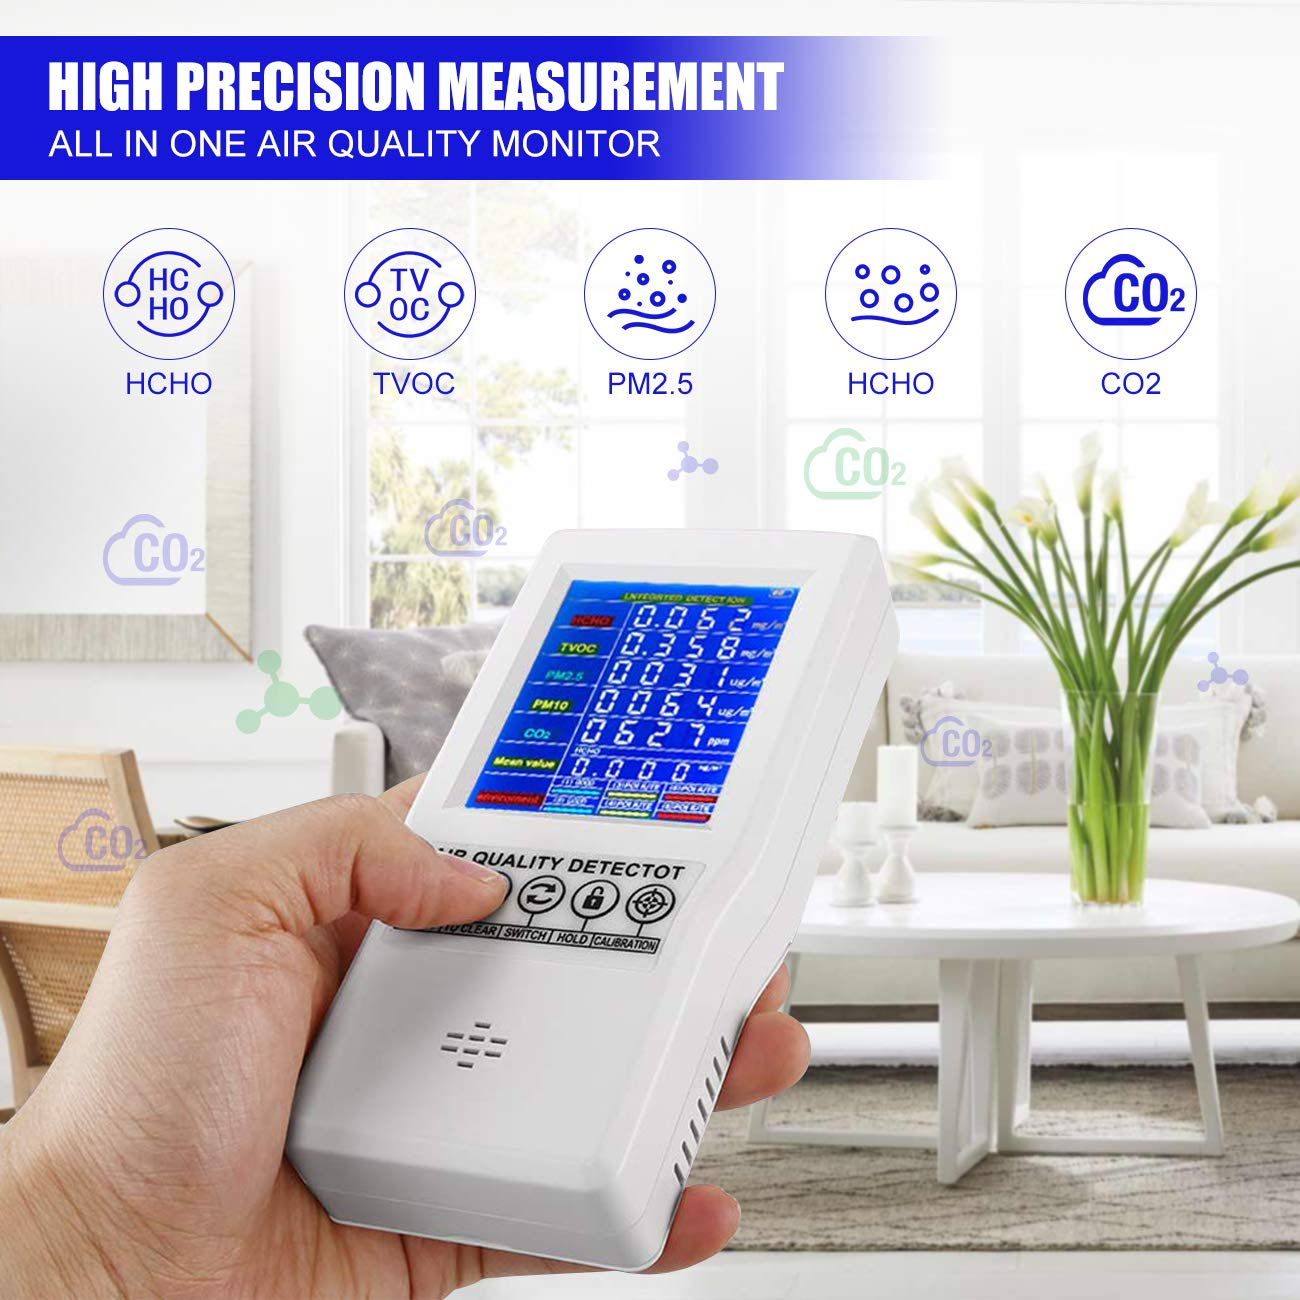 HCHO TVOC PM2.5//PM10 Air Gas Detector Real Time Data/&Mean Value Recording High Precision Air Tester for Home Office WICHEMI Air Quality Monitor Accurate Air Tester for CO2 Formaldehyde